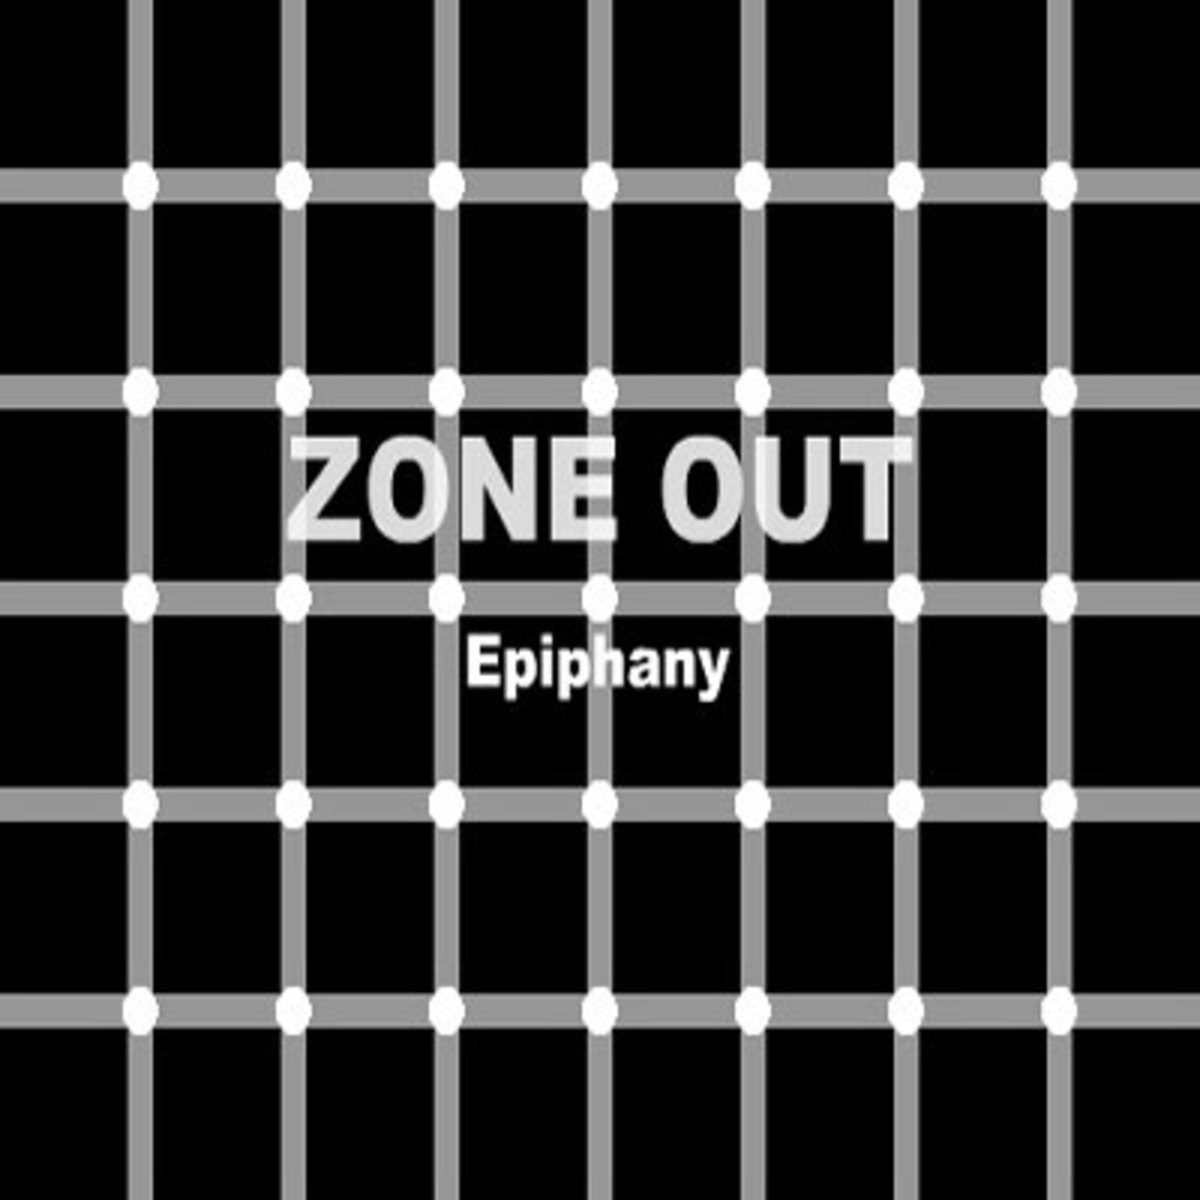 epiphany-zoneout.jpg